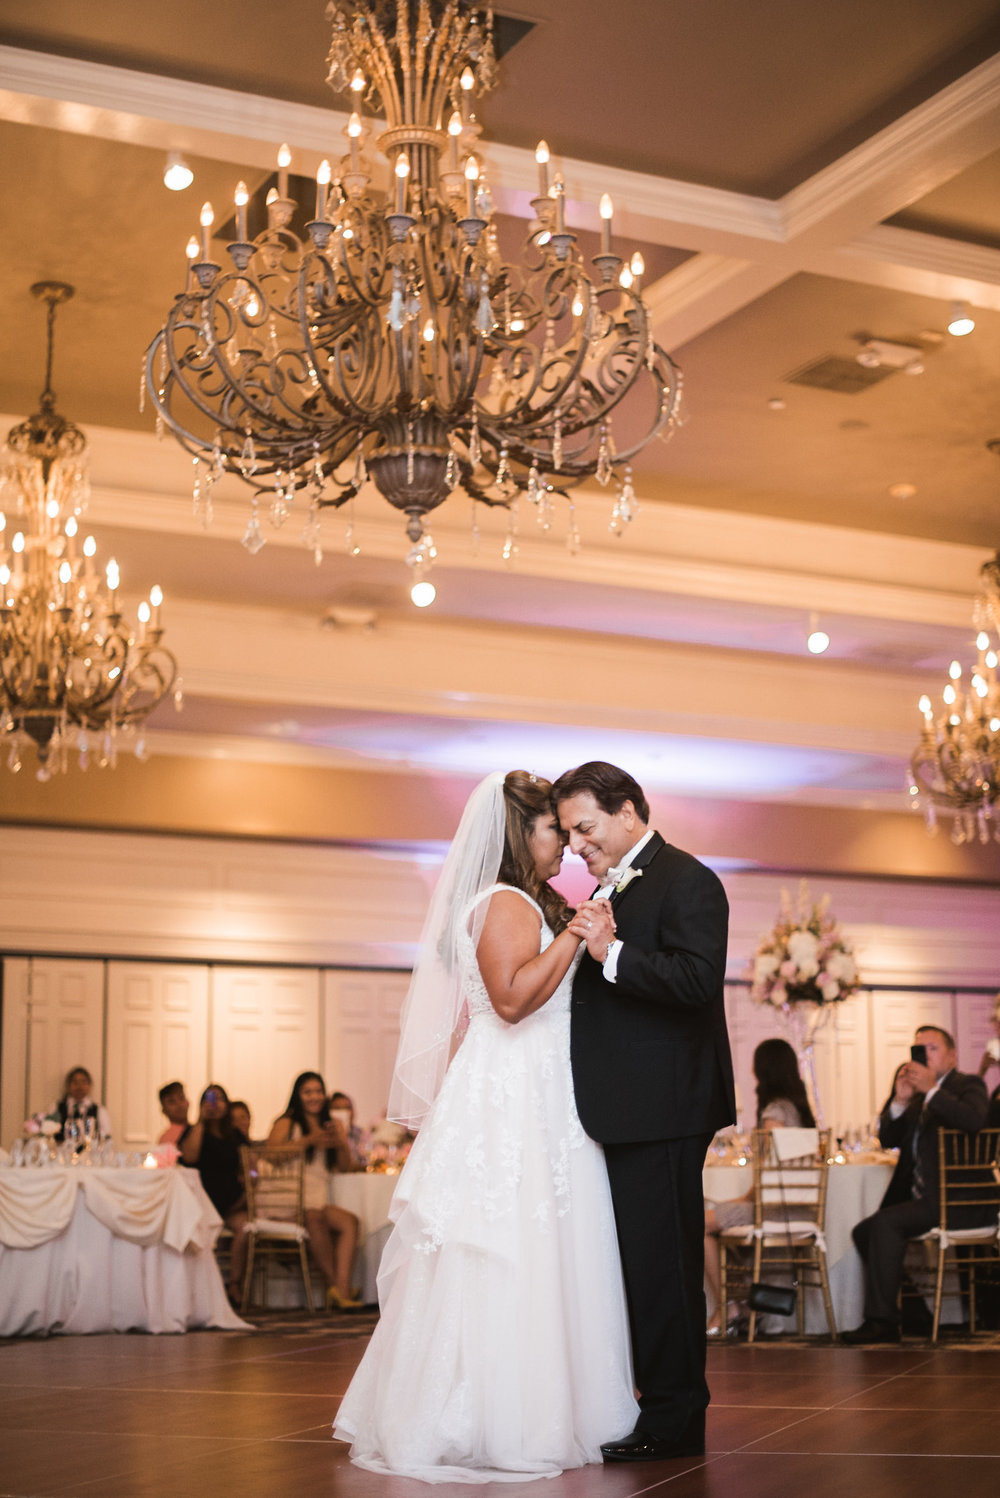 Bride and groom dancing under chandelier